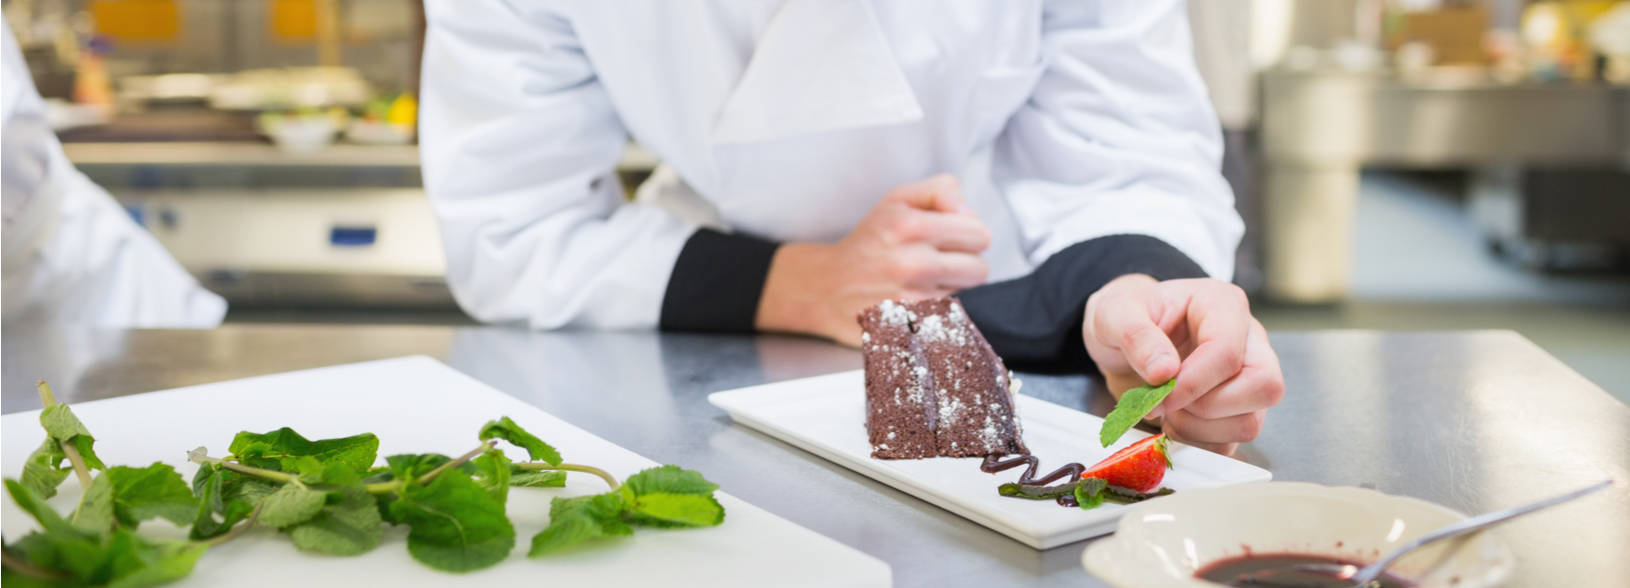 Student plating a dessert for service